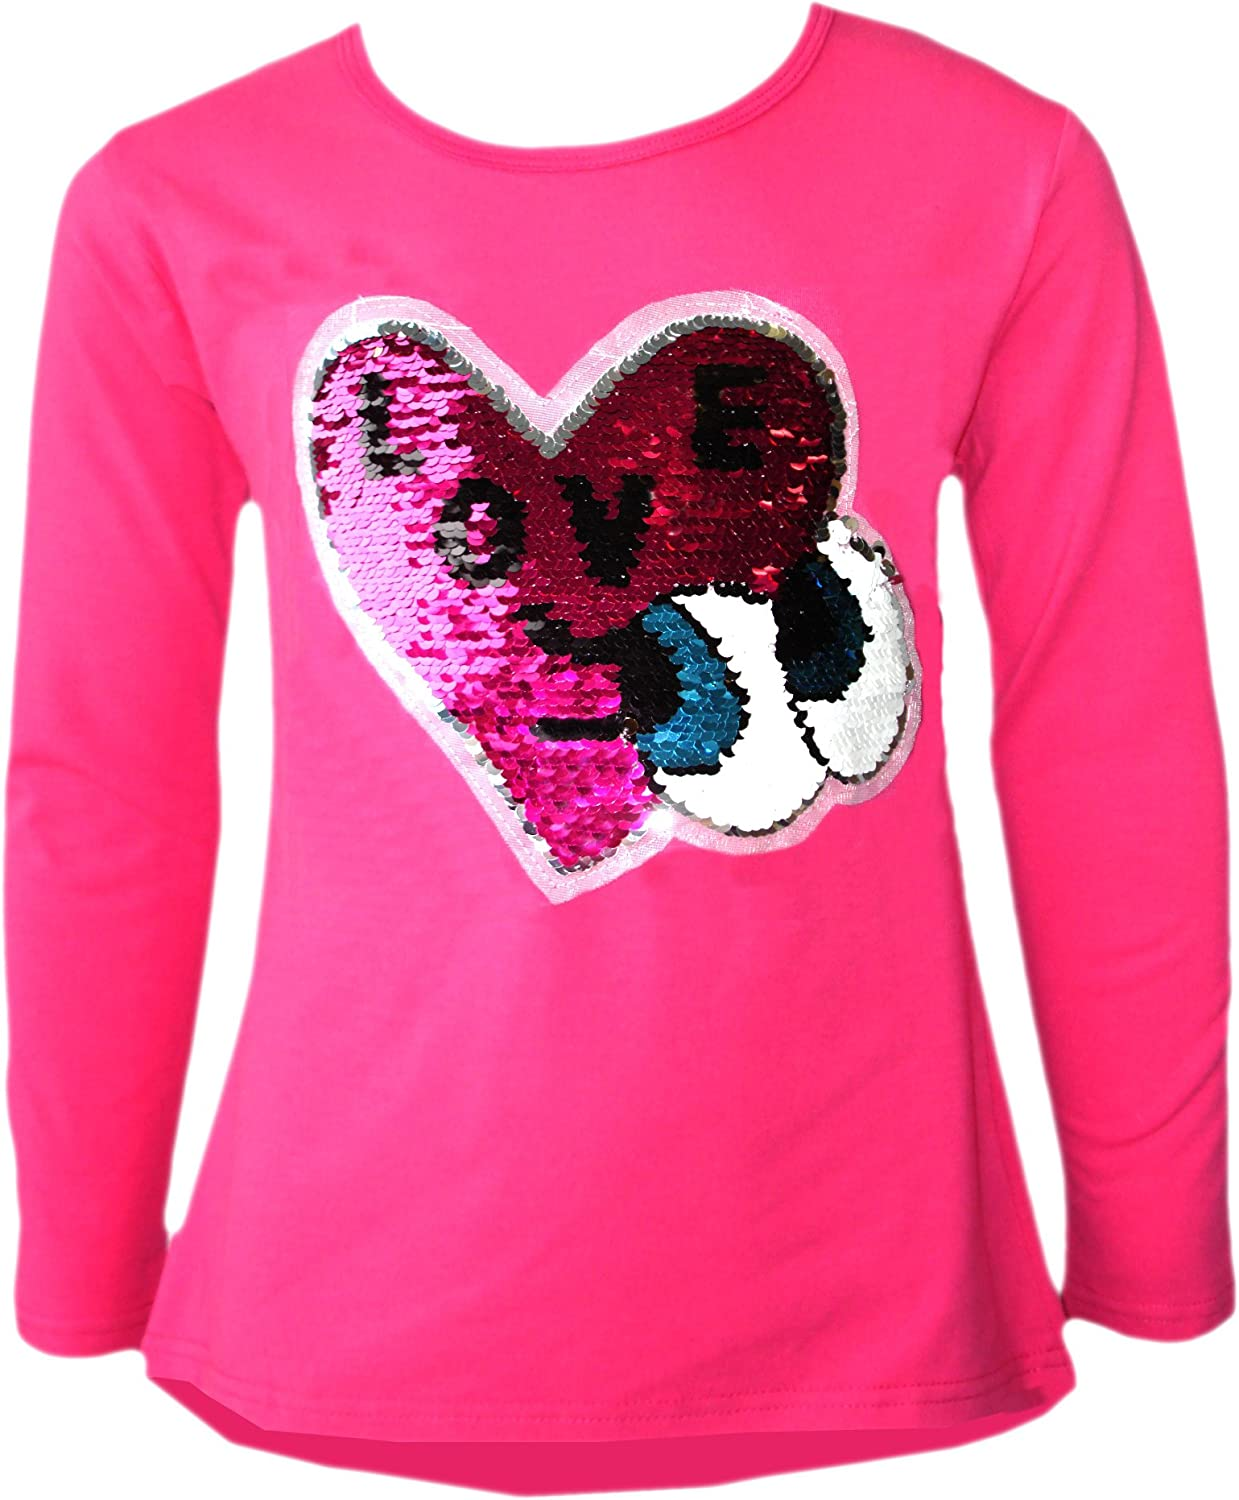 Girls Sequin Tops Brush Changing Tee Heart Star Butterfly Love Pom Pom Ice Cream Cone T-Shirt 3-14 Years